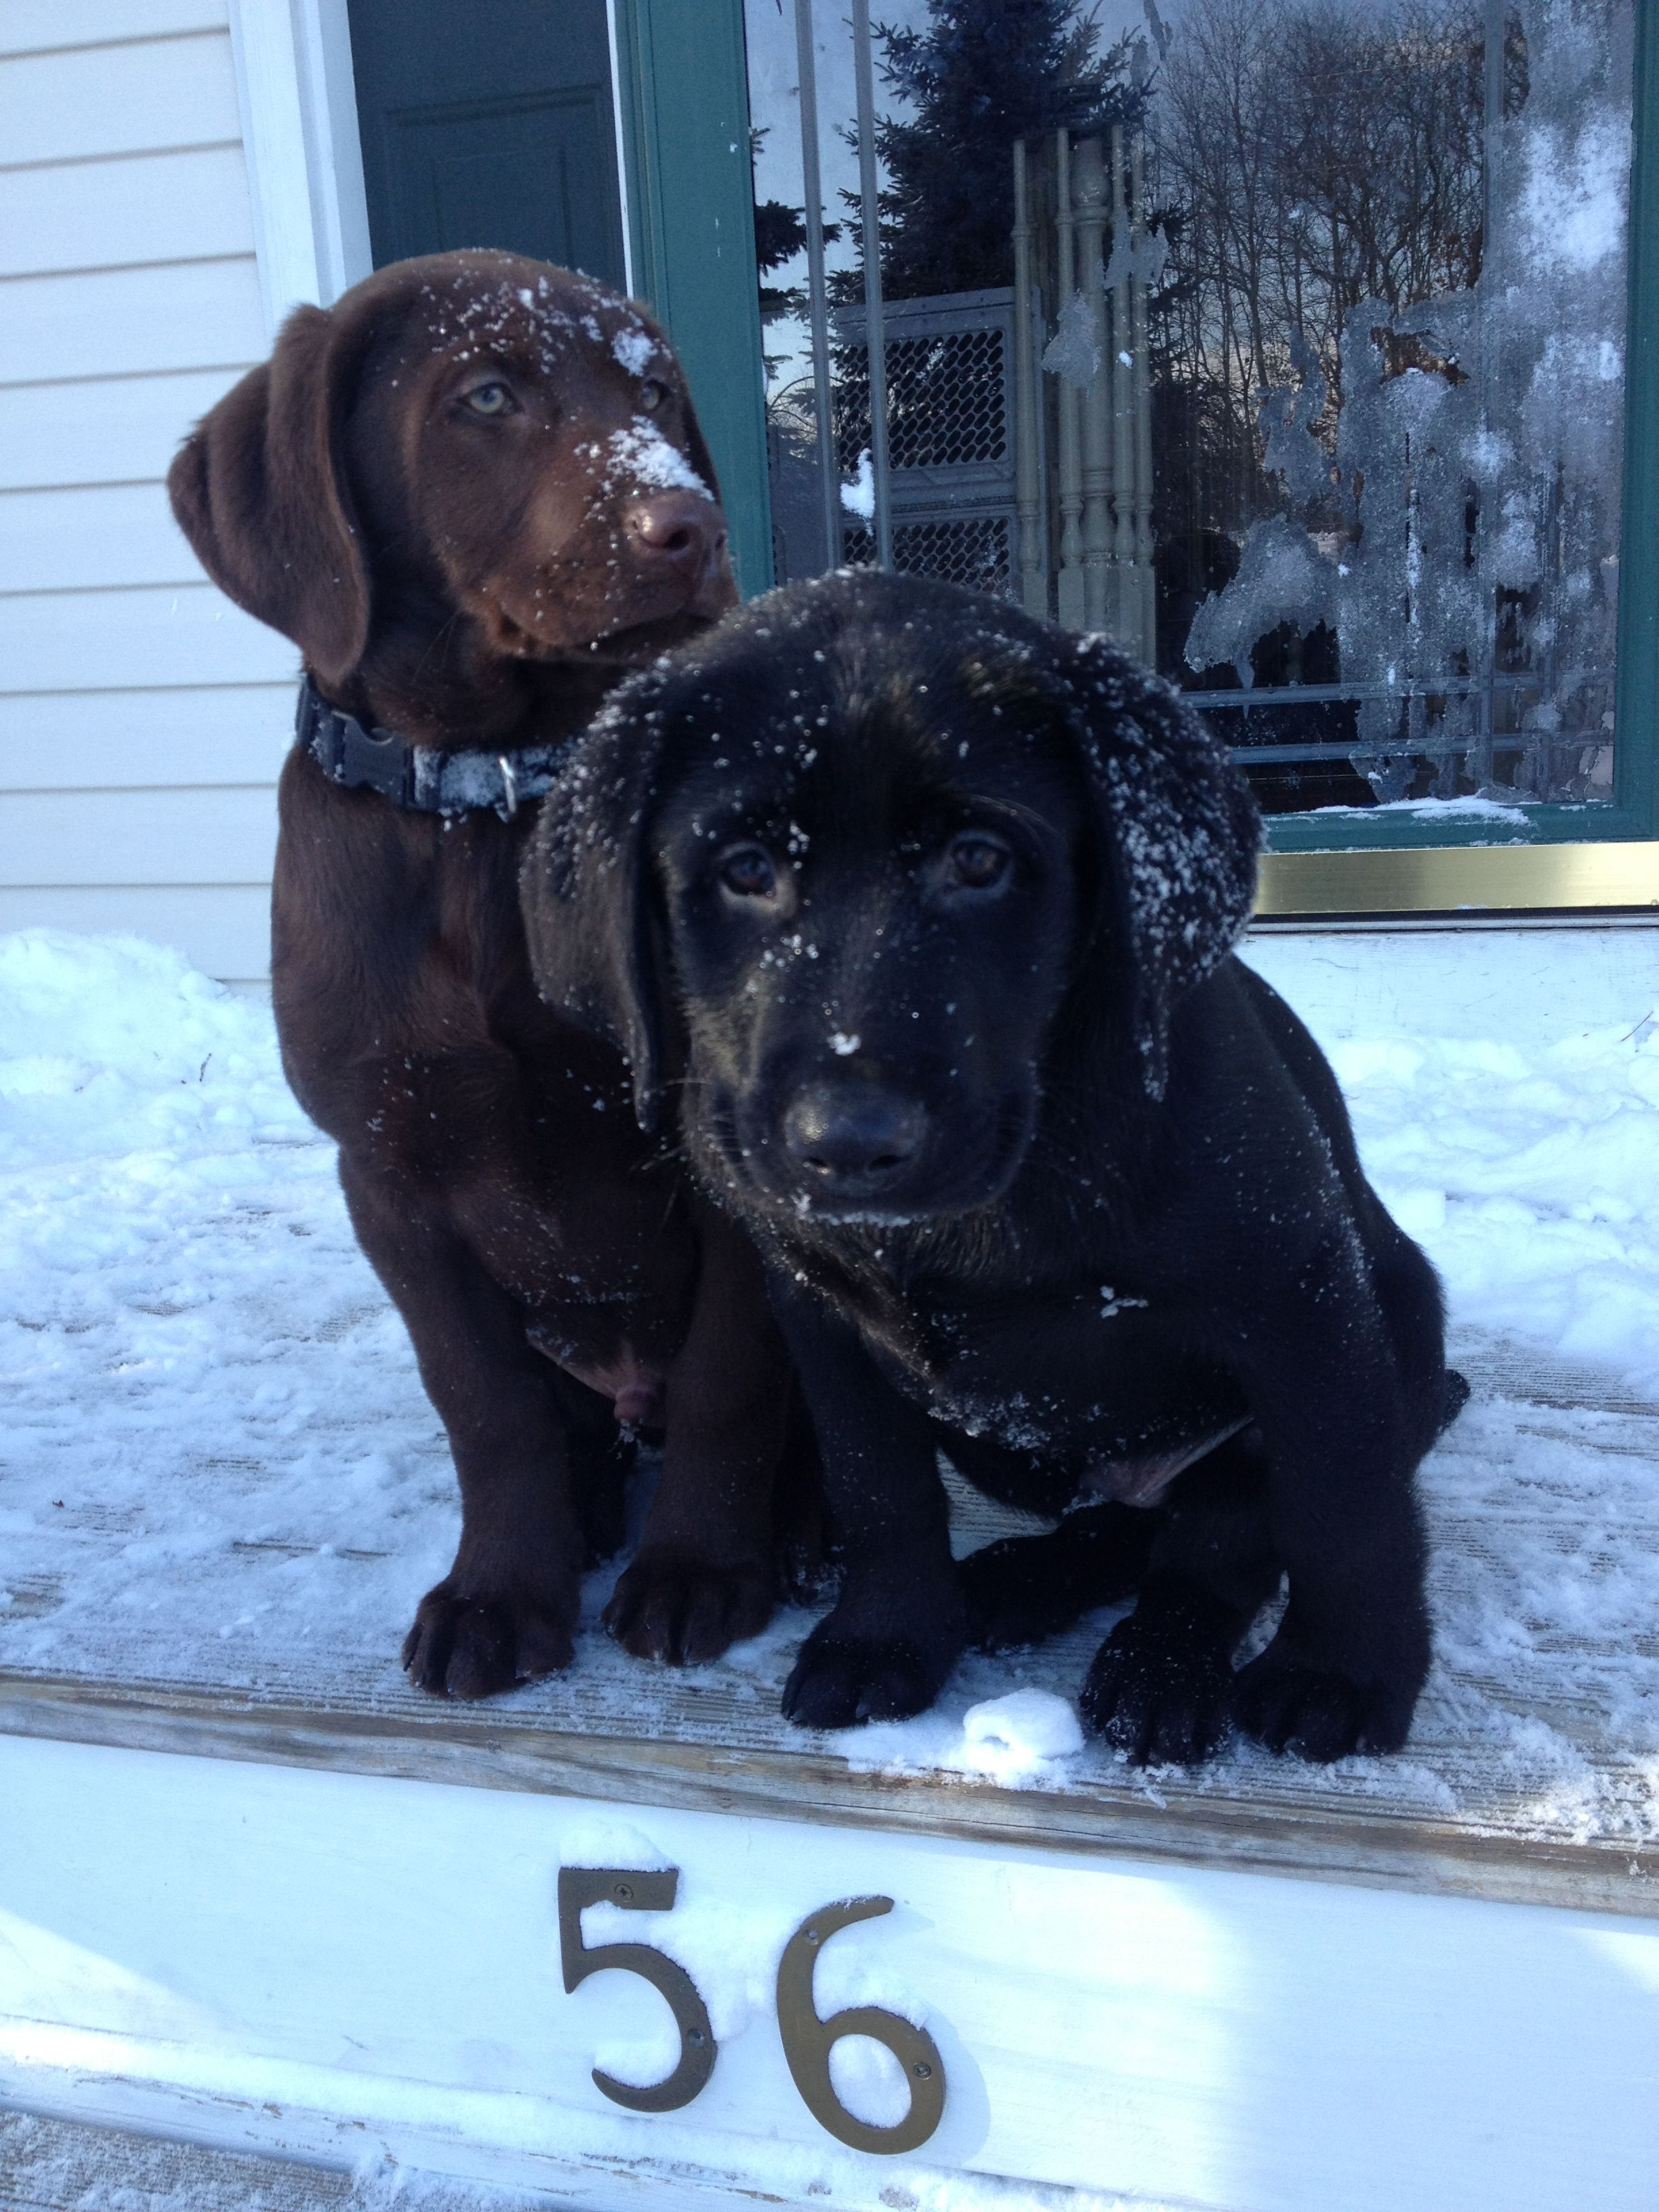 Black Labrador puppy & chocolate Labrador puppy t snow